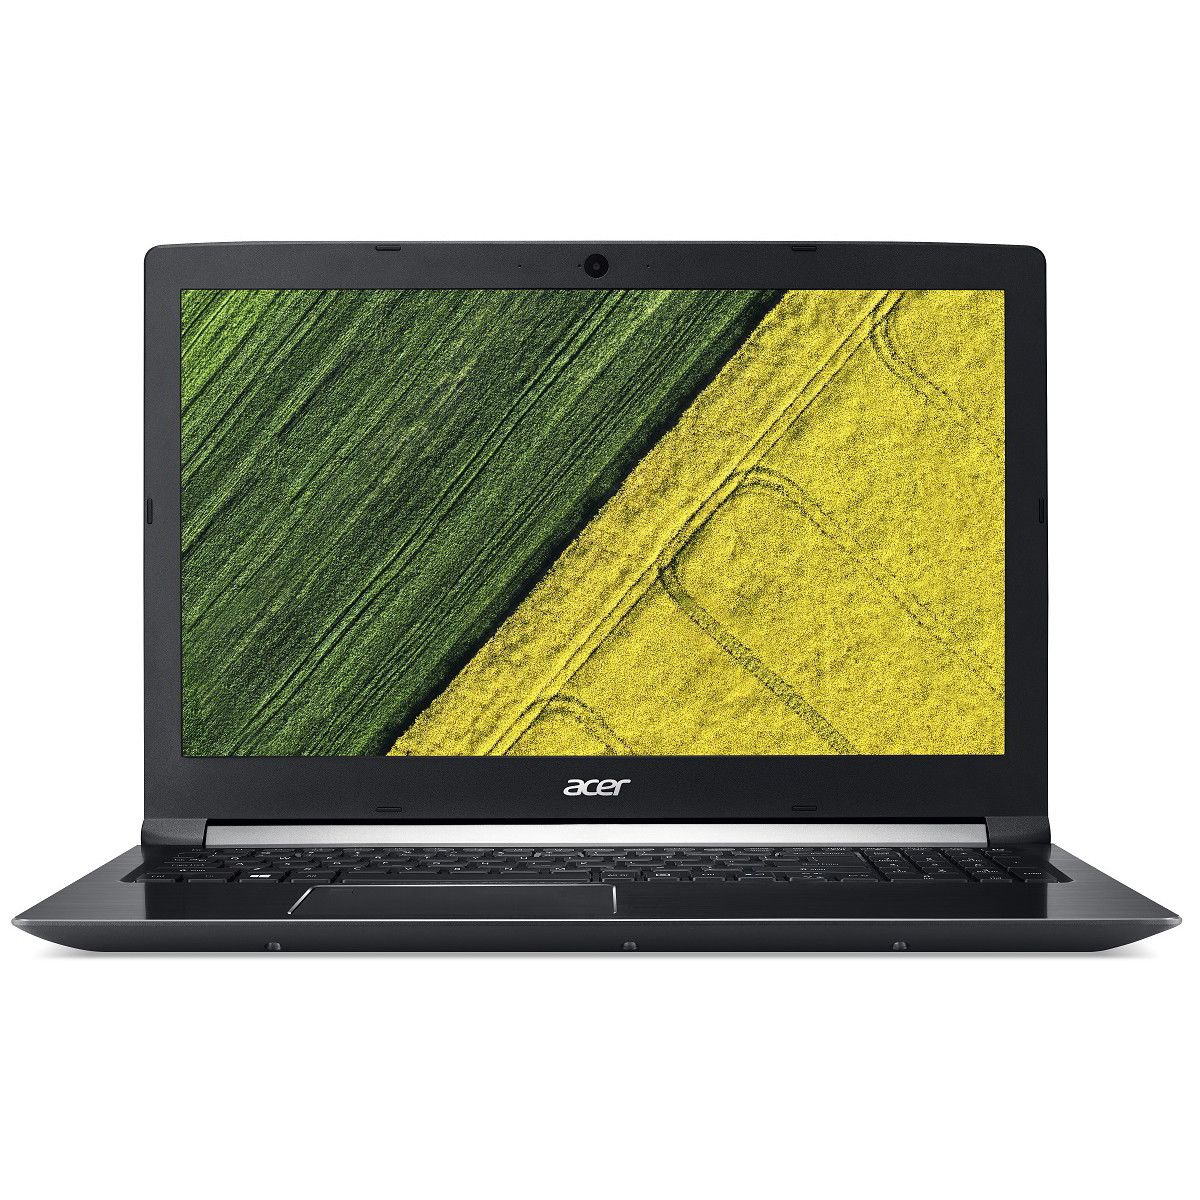 Notebook Acer Aspire A717 17.3 Full HD Intel Core i7-7700HQ GTX 1050 Ti-4GB RAM 8GB SSD 256GB Linux